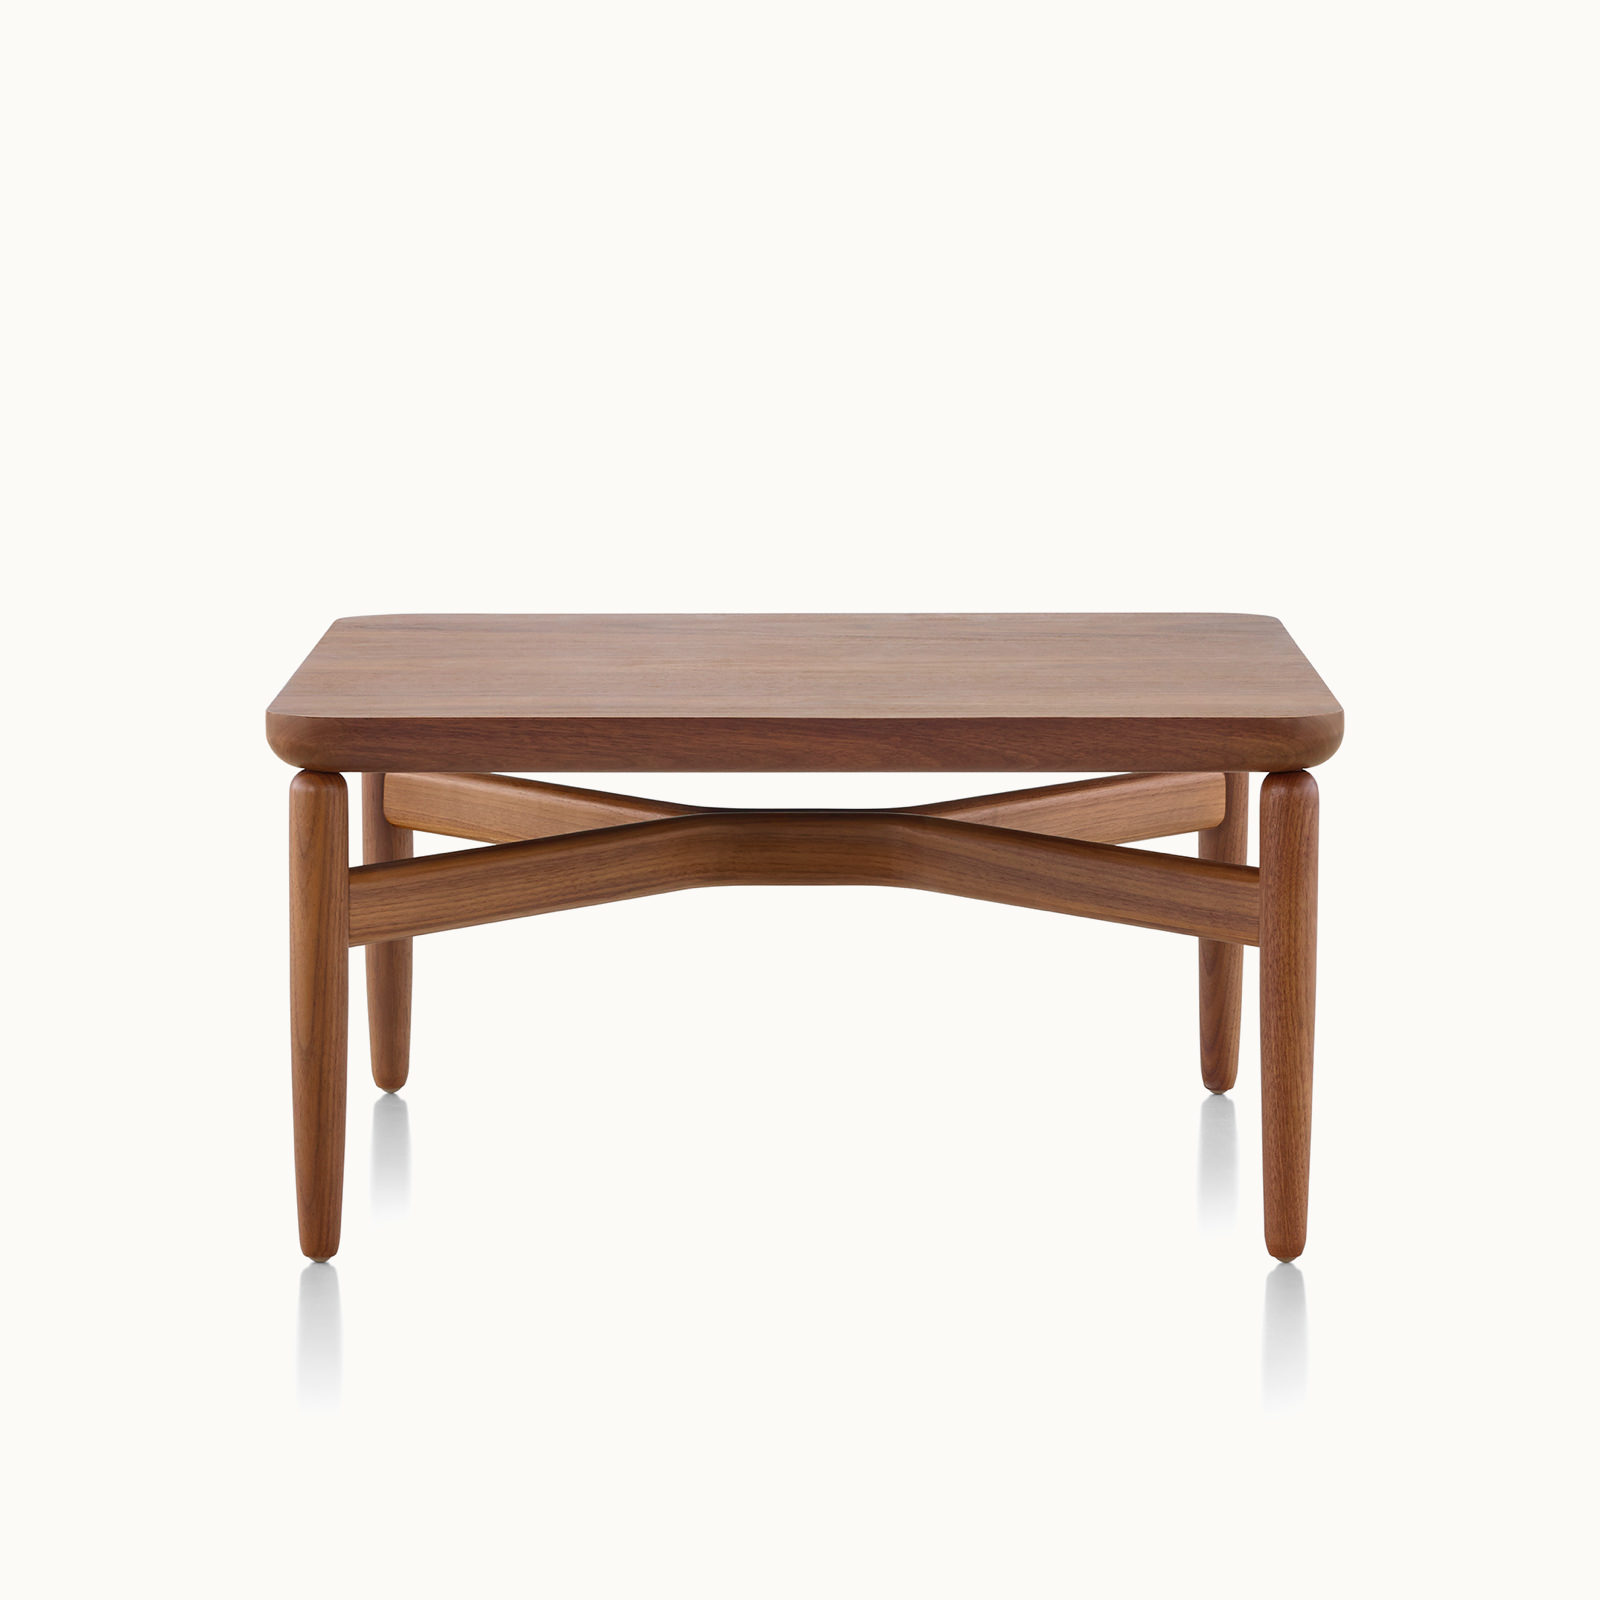 A rectangular Reframe occasional table with a medium wood finish, viewed from the front.